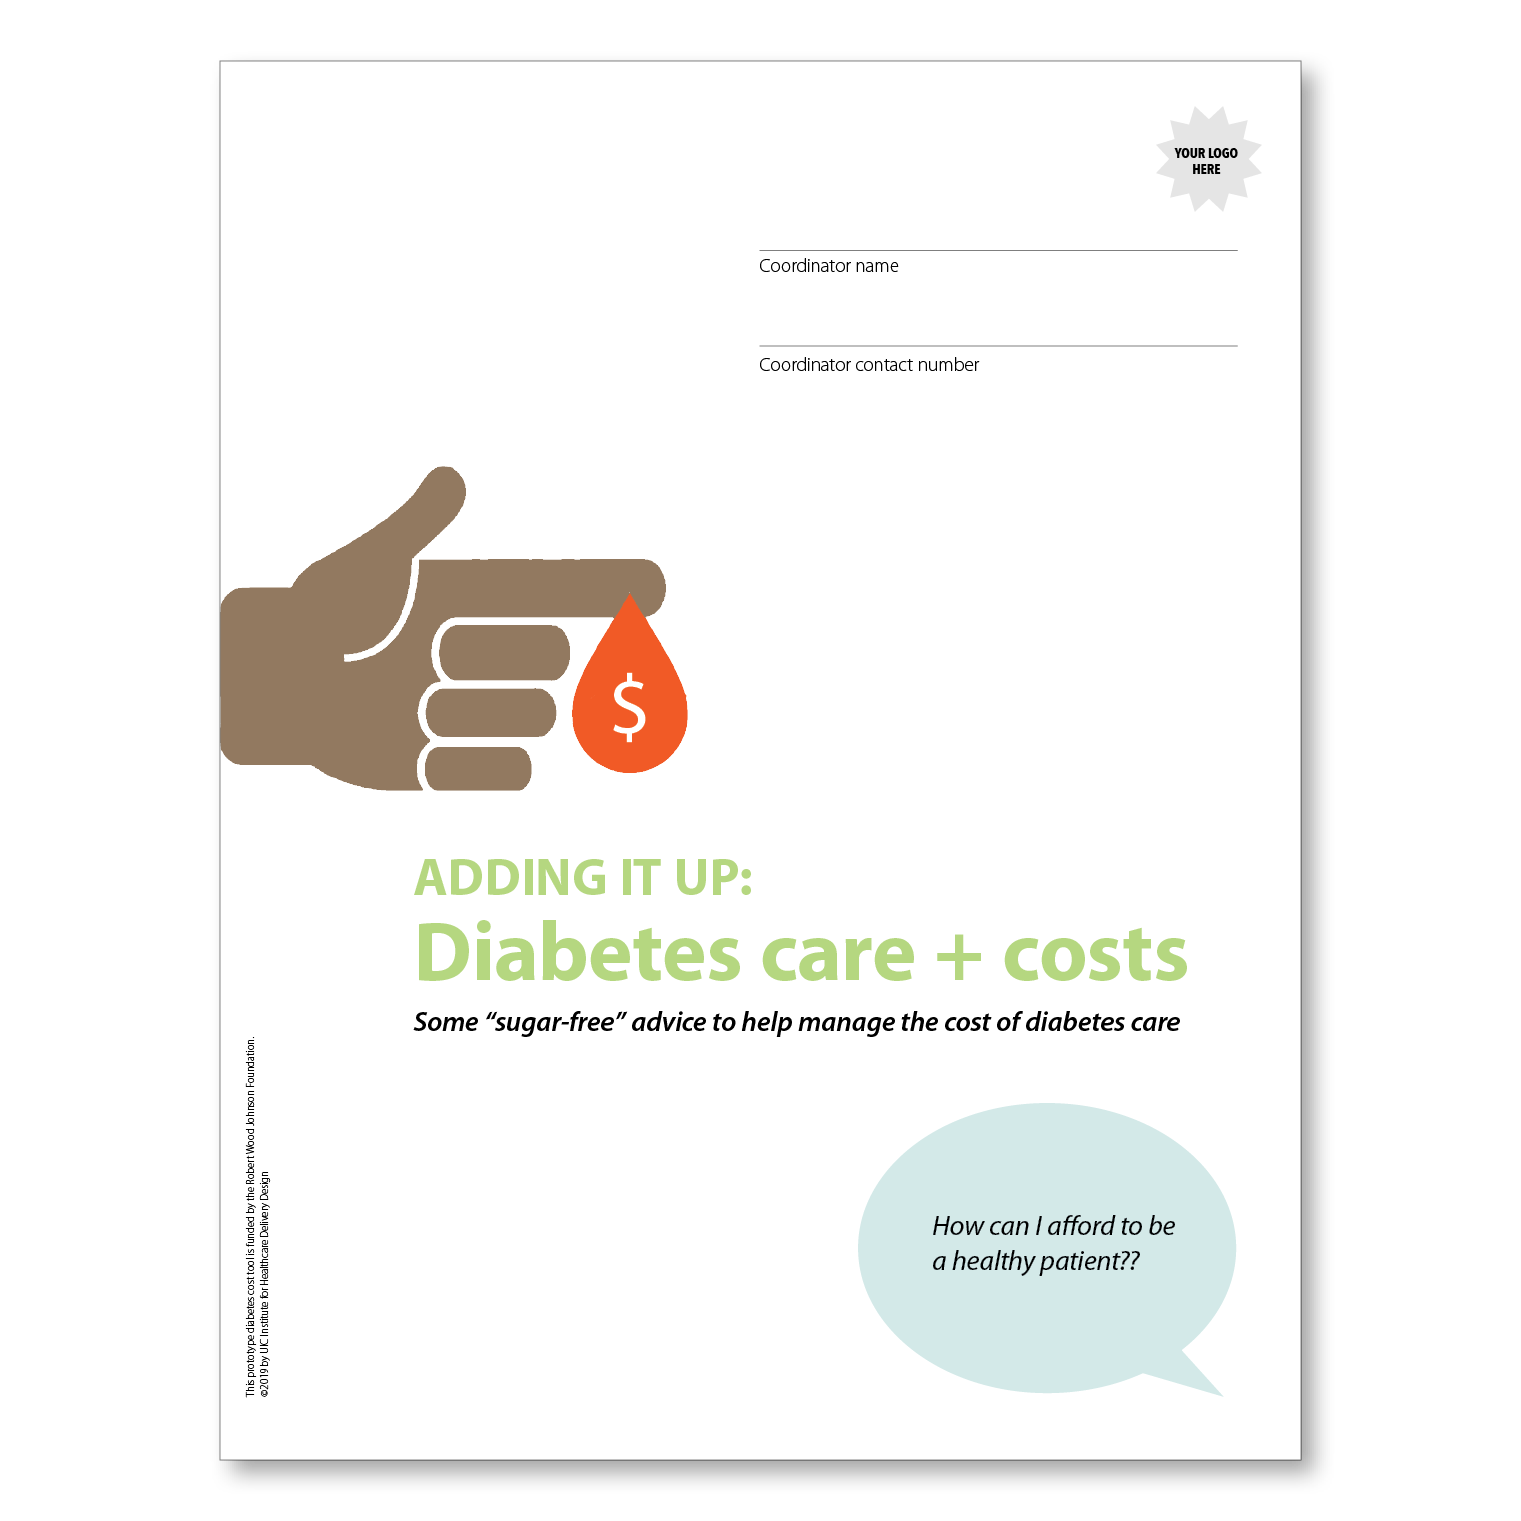 IHDD_Website_Products_COST_Diabetes_YLH_20190906.png